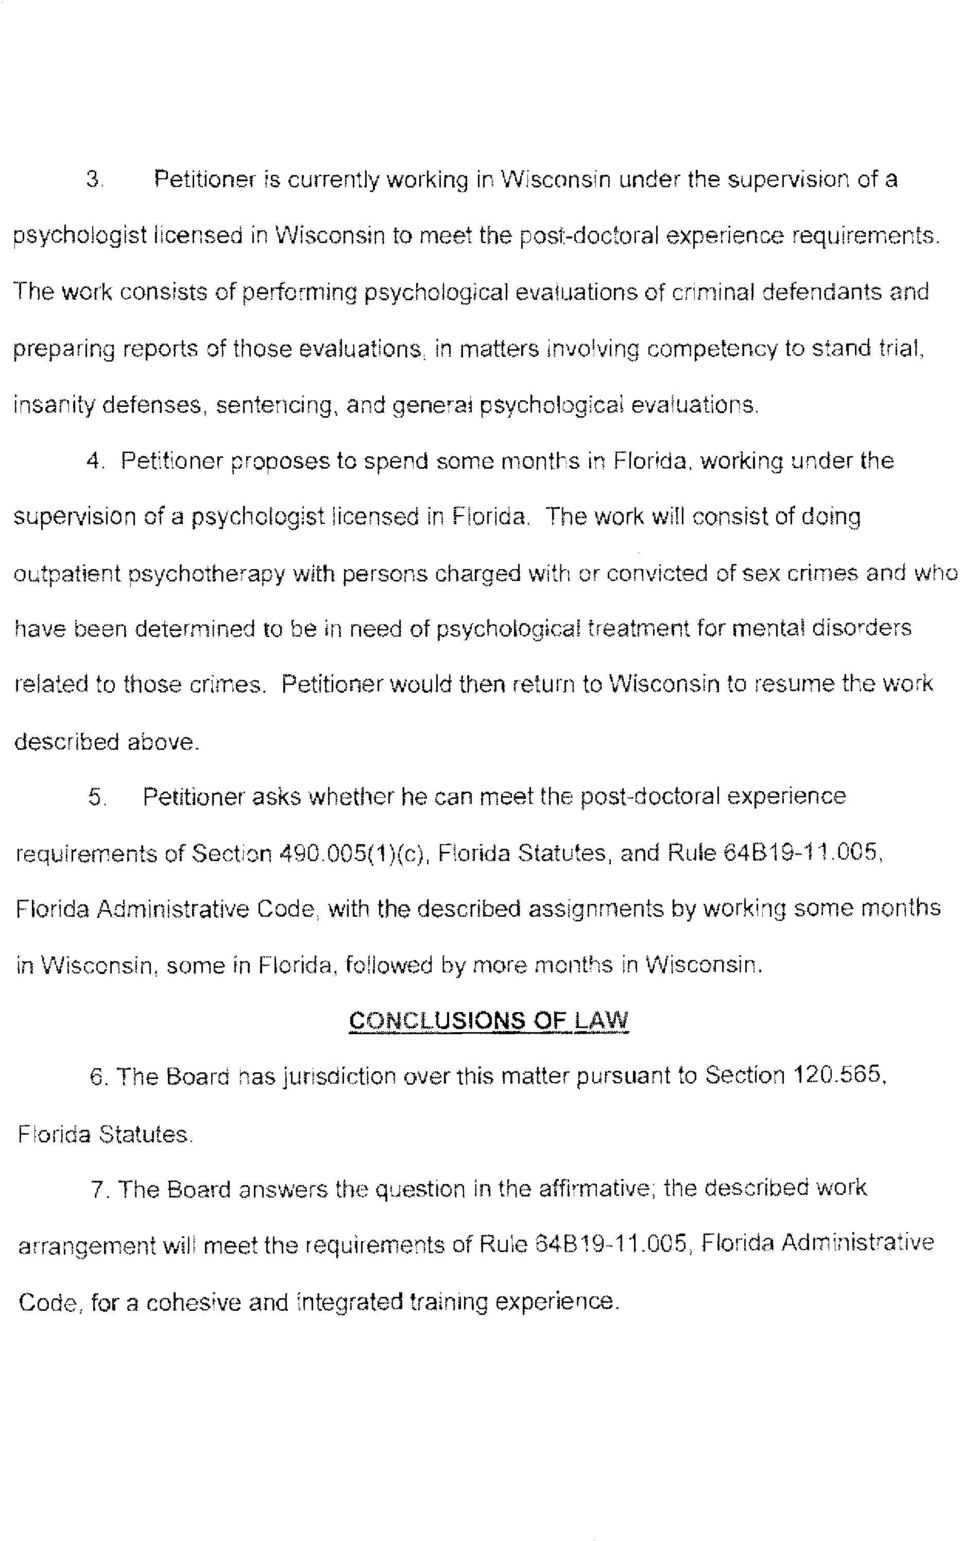 insanity defenses, sentencing, and genera4 psychological evaluations. 4. Petitioner proposes to spend some niontl-s in Florida, working under the supervision of a psychologist iicerised in Florida.